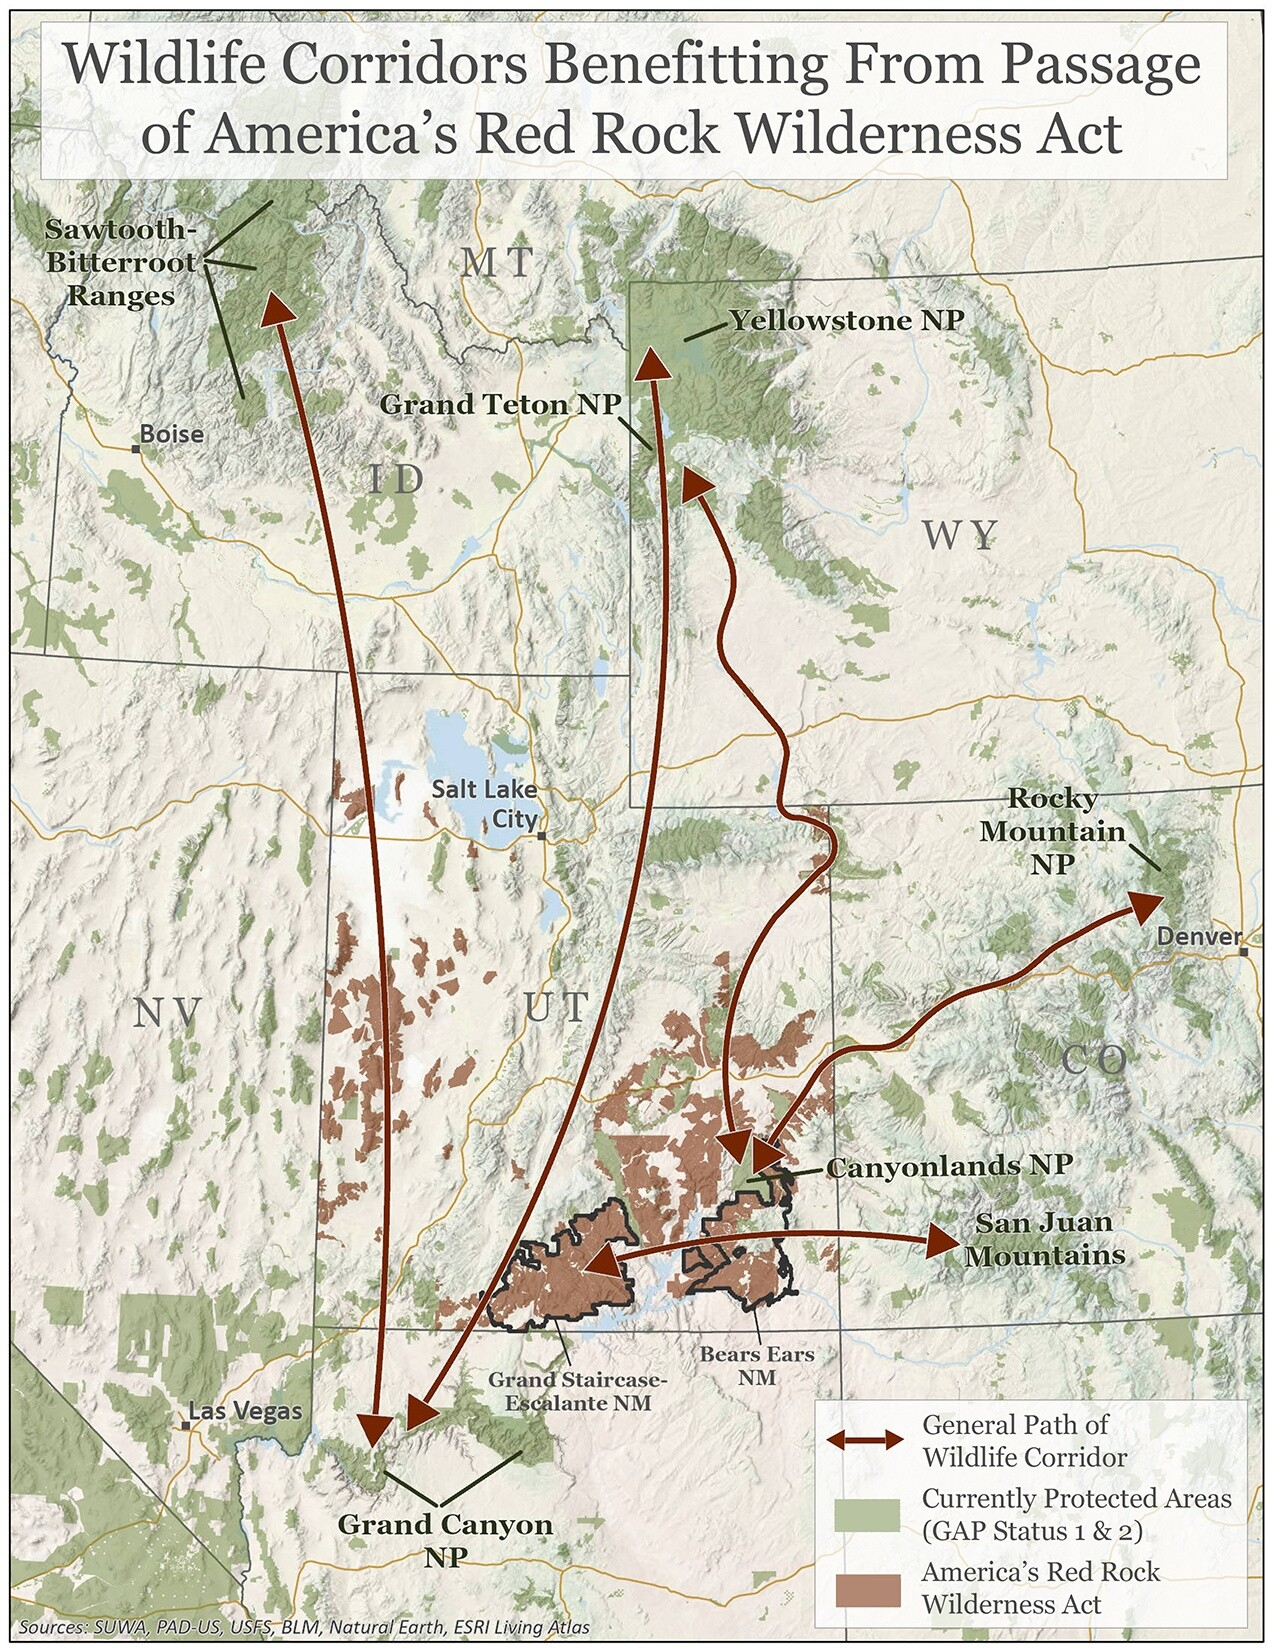 Wildlife Corridors Benefiting from Passage of America's Red Rock Wilderness Act (Map)